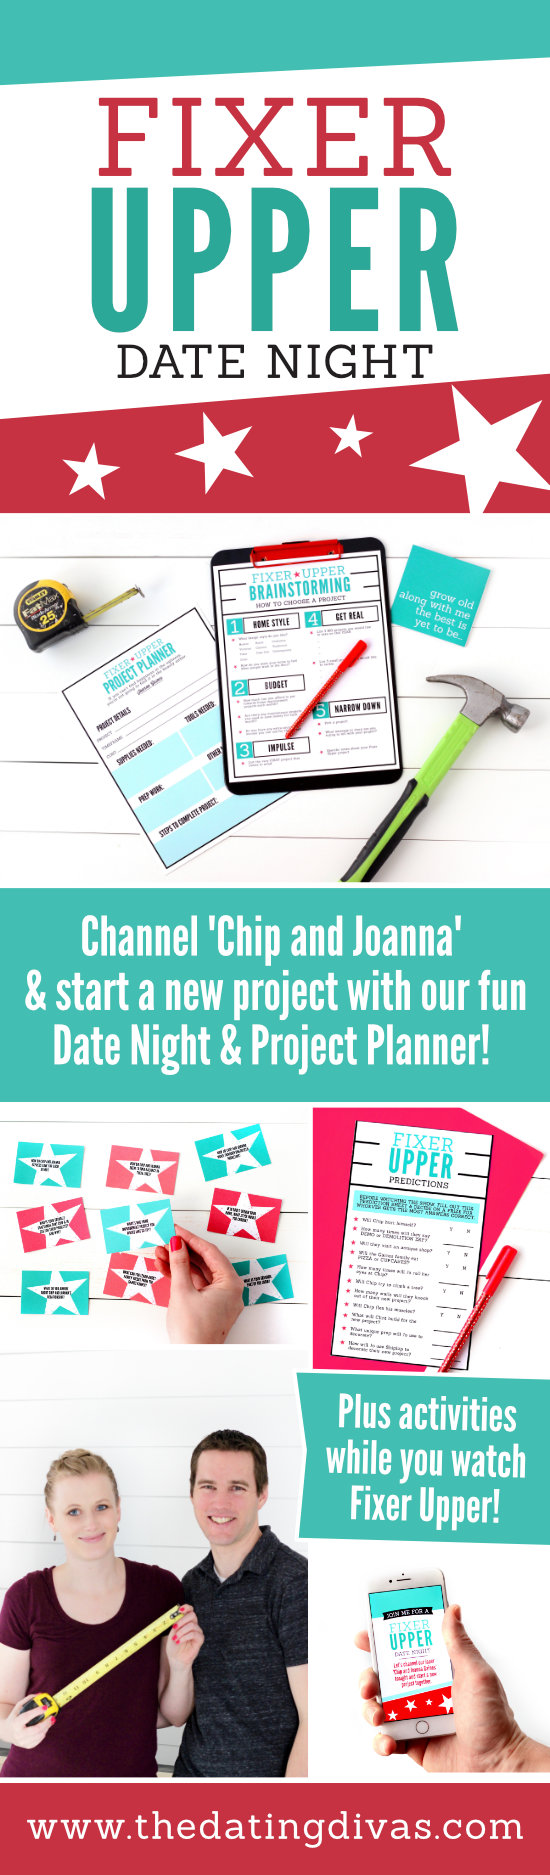 Fixer Upper Date Night Plus Project Planner #fixerupper #datenight